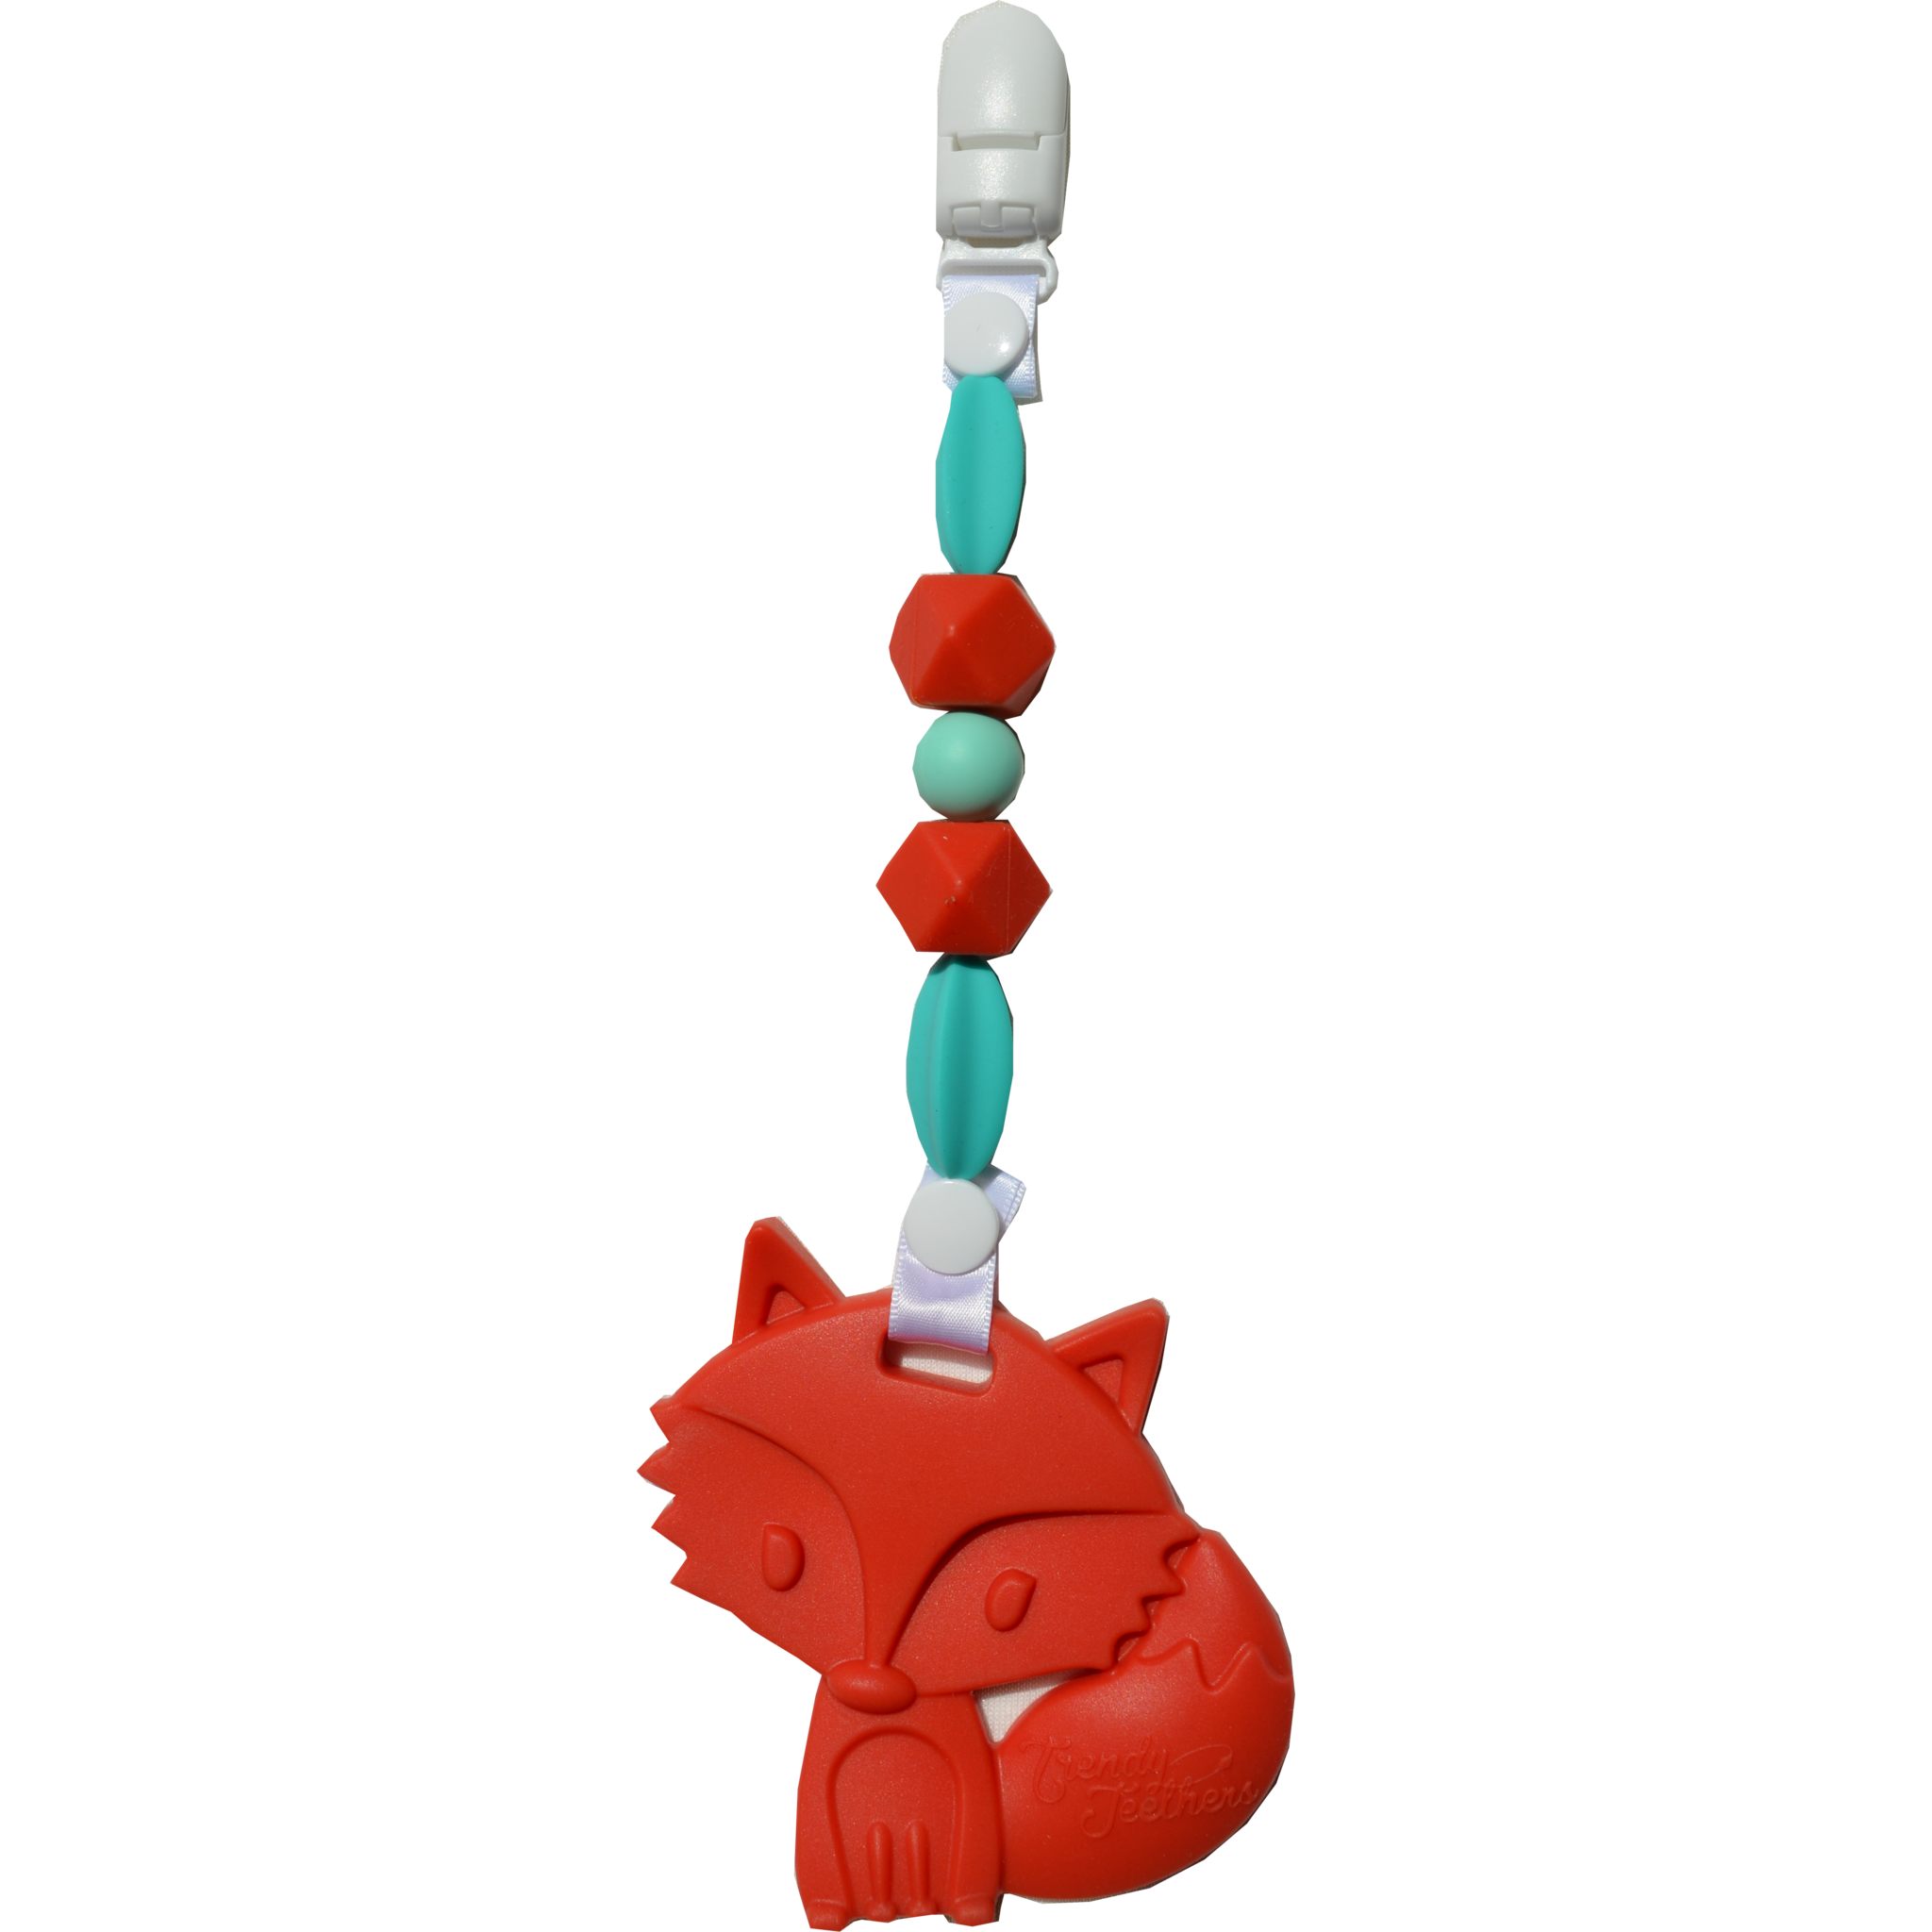 Friendly Fox Wearable Clip-On Teether by Sleeping Baby Trendy Teethers are unique, one of a kind, teething necklaces, pacifier clips and attachable baby teethers designed by Stephanie Parker, the creator of the Zipadee-Zip!  Perfect as a sensory tool and to prevent scratching during nursing and great to soothe those little gums during teething. SUPER SAFE FOR BABY! Conforms to safety standards: ASTMF963 and 16CFR and is made from 100% silicone with nylon string for the necklaces and ribbon for the teethers and pacifier clips. No BPA,phalates,PVC,cadmium, or lead Only attach to clothing. Do not attach to cords, bands or belts that could cause a strangulation hazard. Necklaces are to be worn by adults only for babies to chew on. Do not place around a baby's neck. Easily cleaned with soap and water! This is not a toy or a traditional teether.  We'd love to see real mommas and babies stylin' with their Trendy Teethers(tm) so be sure to share your photo on our facebook page here: https://www.facebook.com/pages/Zipadeezip-Slumber-Sacks-wwwzipadeezipcom/140978145992706?ref=br_rs&pnref=lhc -  Friendly Fox  Wearable Clip-On Teether by Sleeping Baby